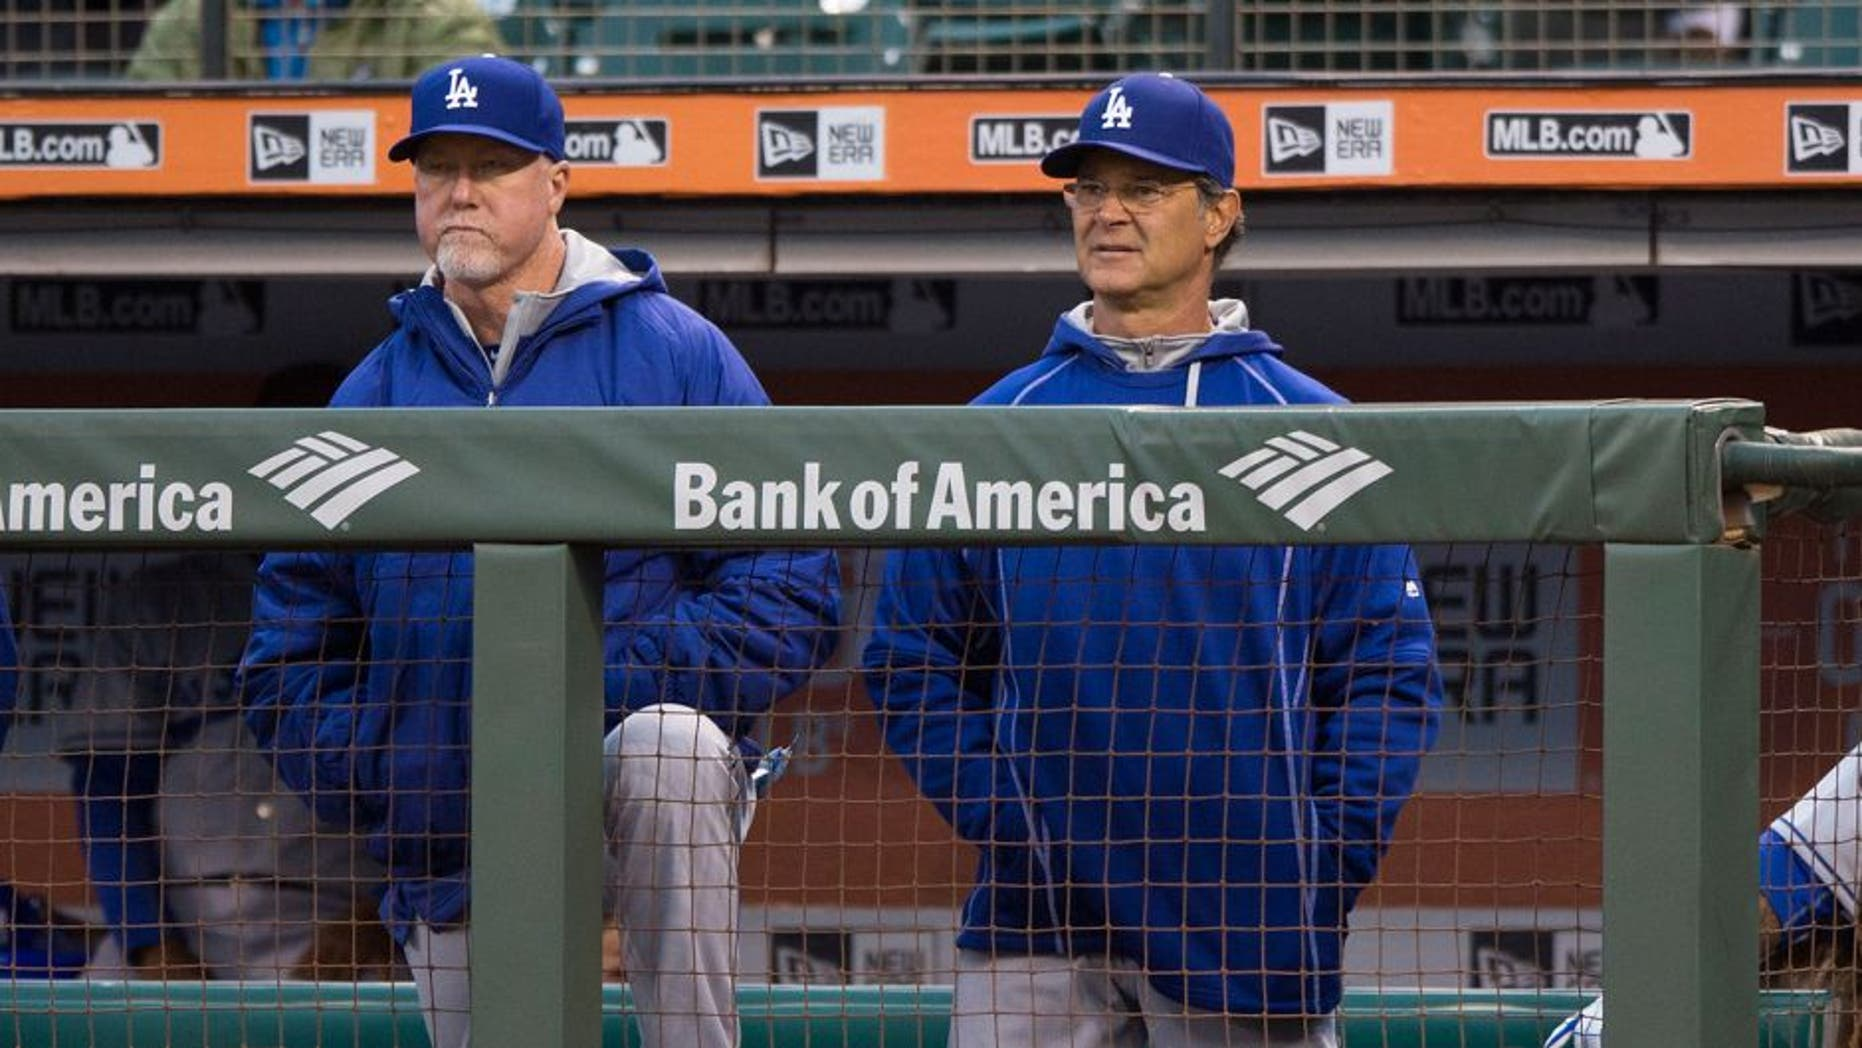 SAN FRANCISCO, CA - APRIL 21: Mark McGwire #25 of the Los Angeles Dodgers and manager Don Mattingly #8 stand in the dugout during the first inning against the San Francisco Giants at AT&T Park on April 21, 2015 in San Francisco, California. The San Francisco Giants defeated the Los Angeles Dodgers 6-2. (Photo by Jason O. Watson/Getty Images)